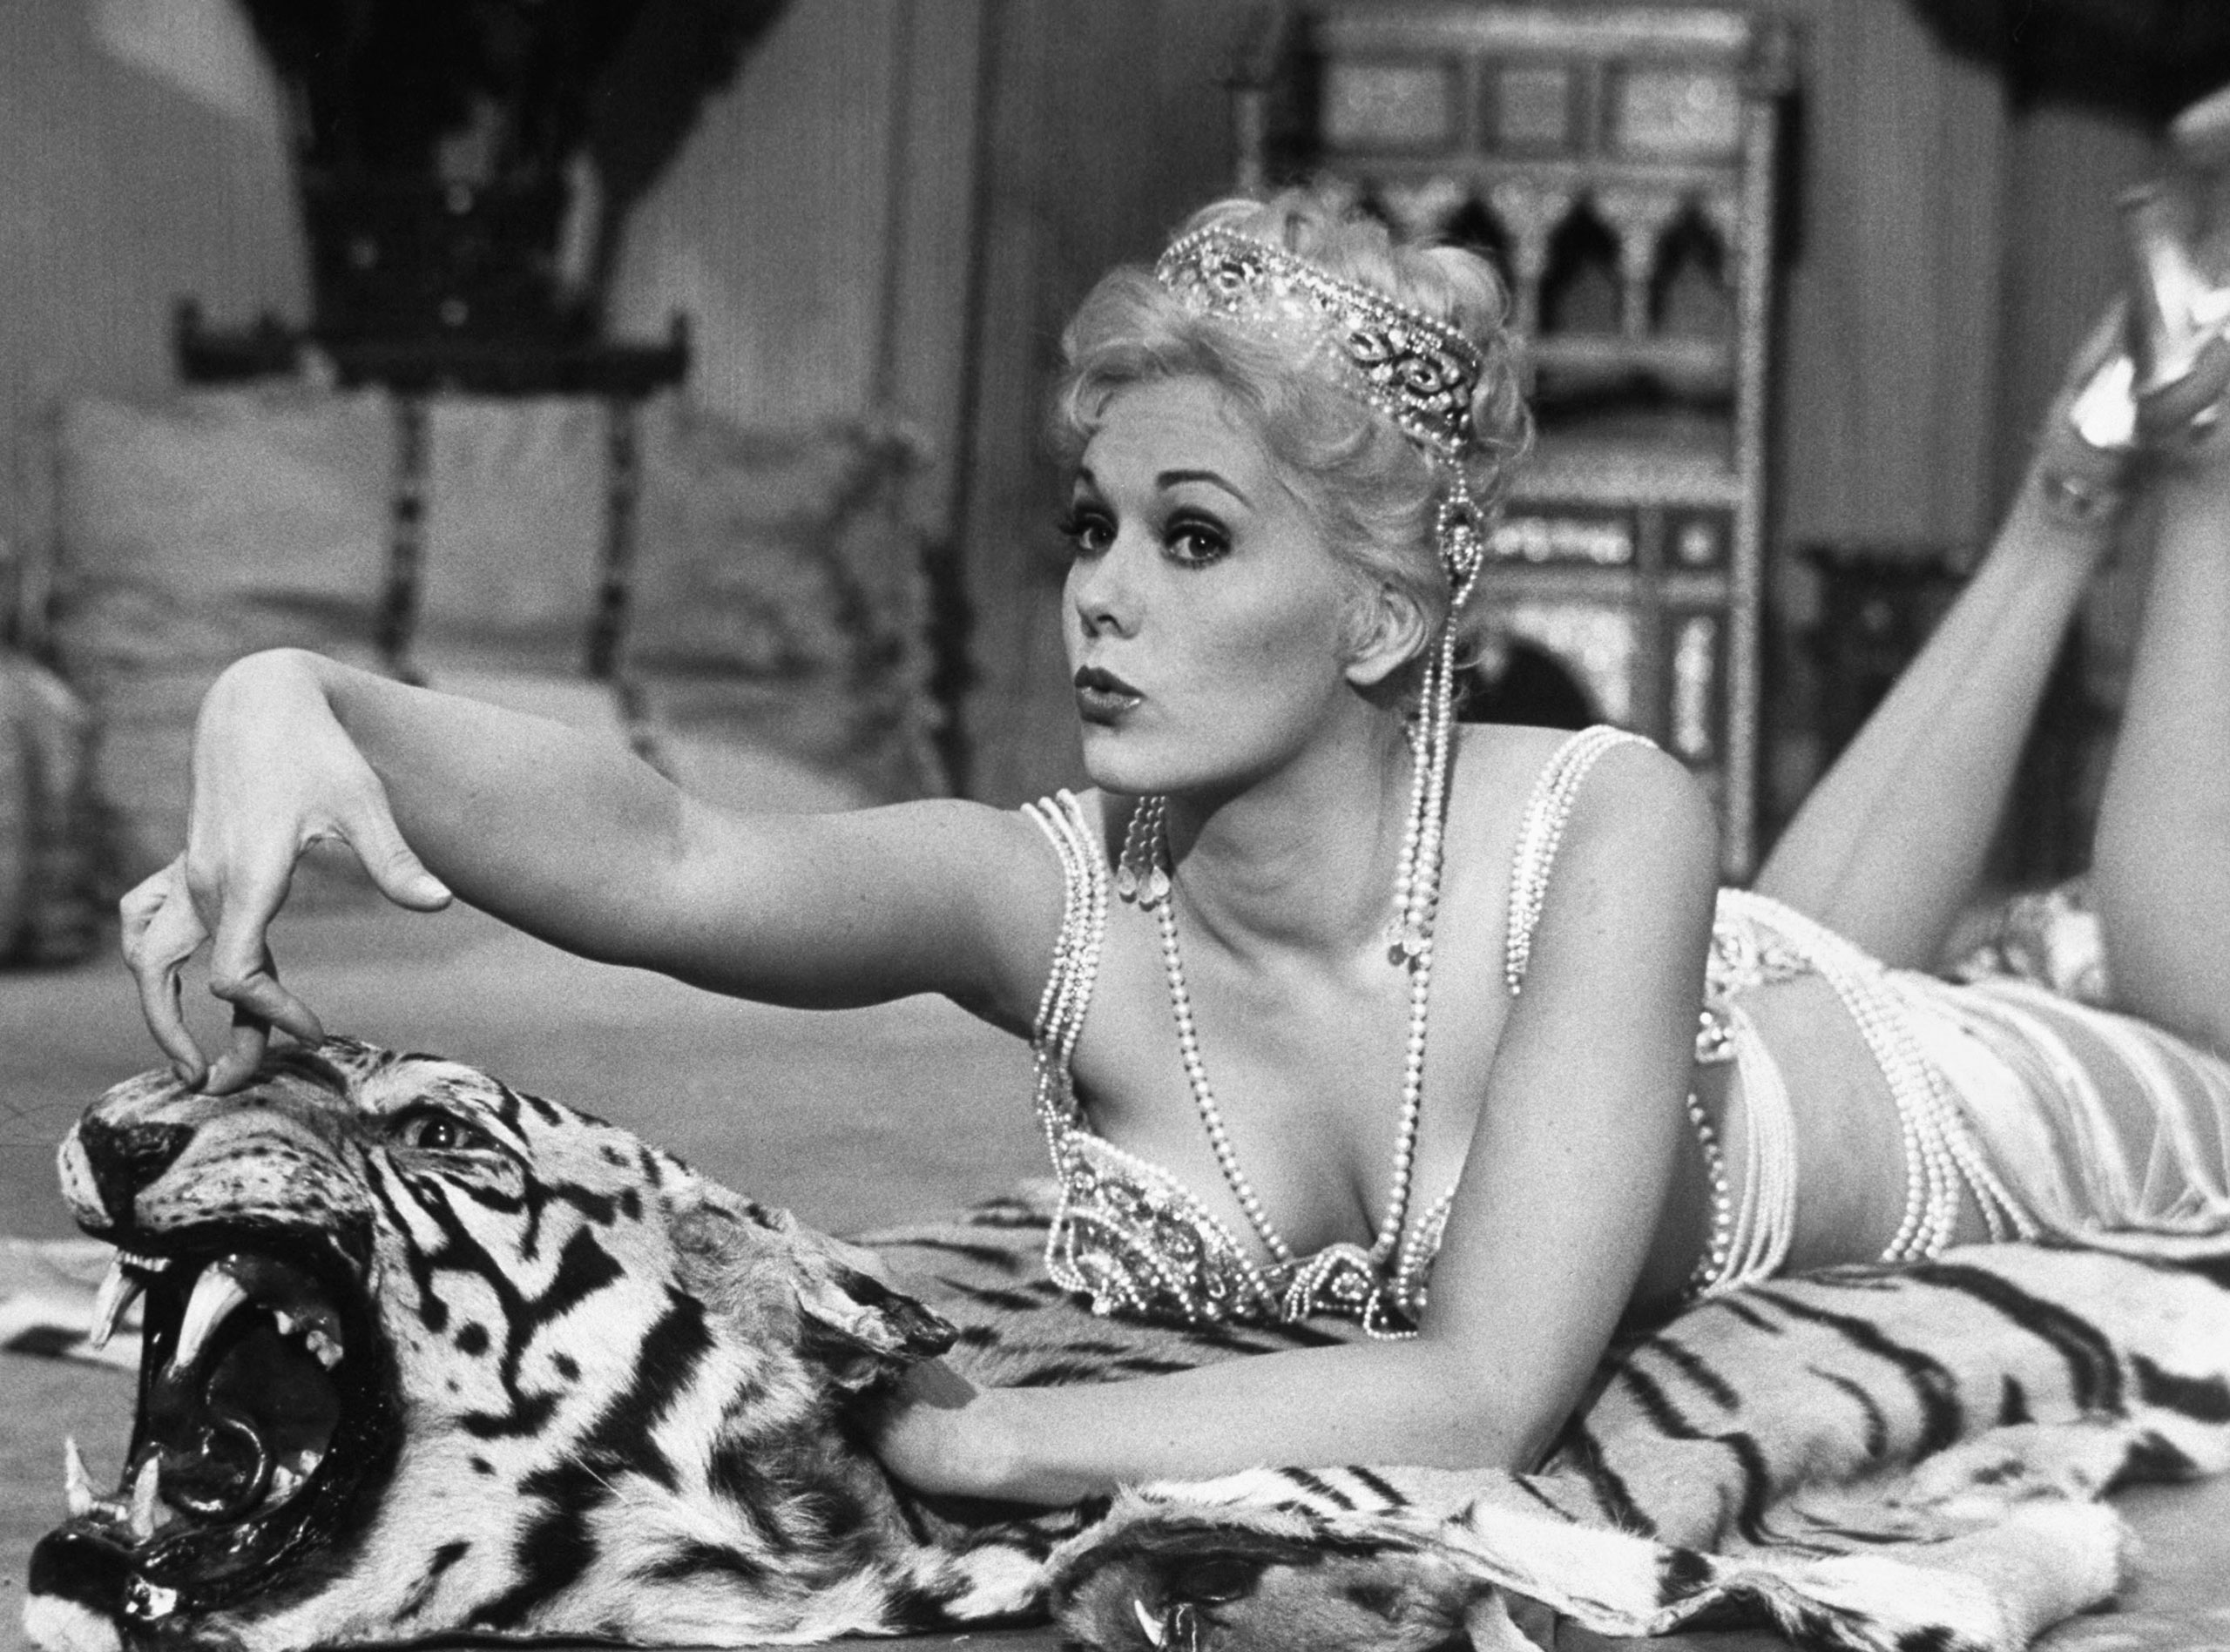 Kim Novak, who was never nominated, though she presented at the 2014 awards. Pictured performing the hoochie-coochie dance in the movie <i>Jeanne Eagels</i>, 1957.